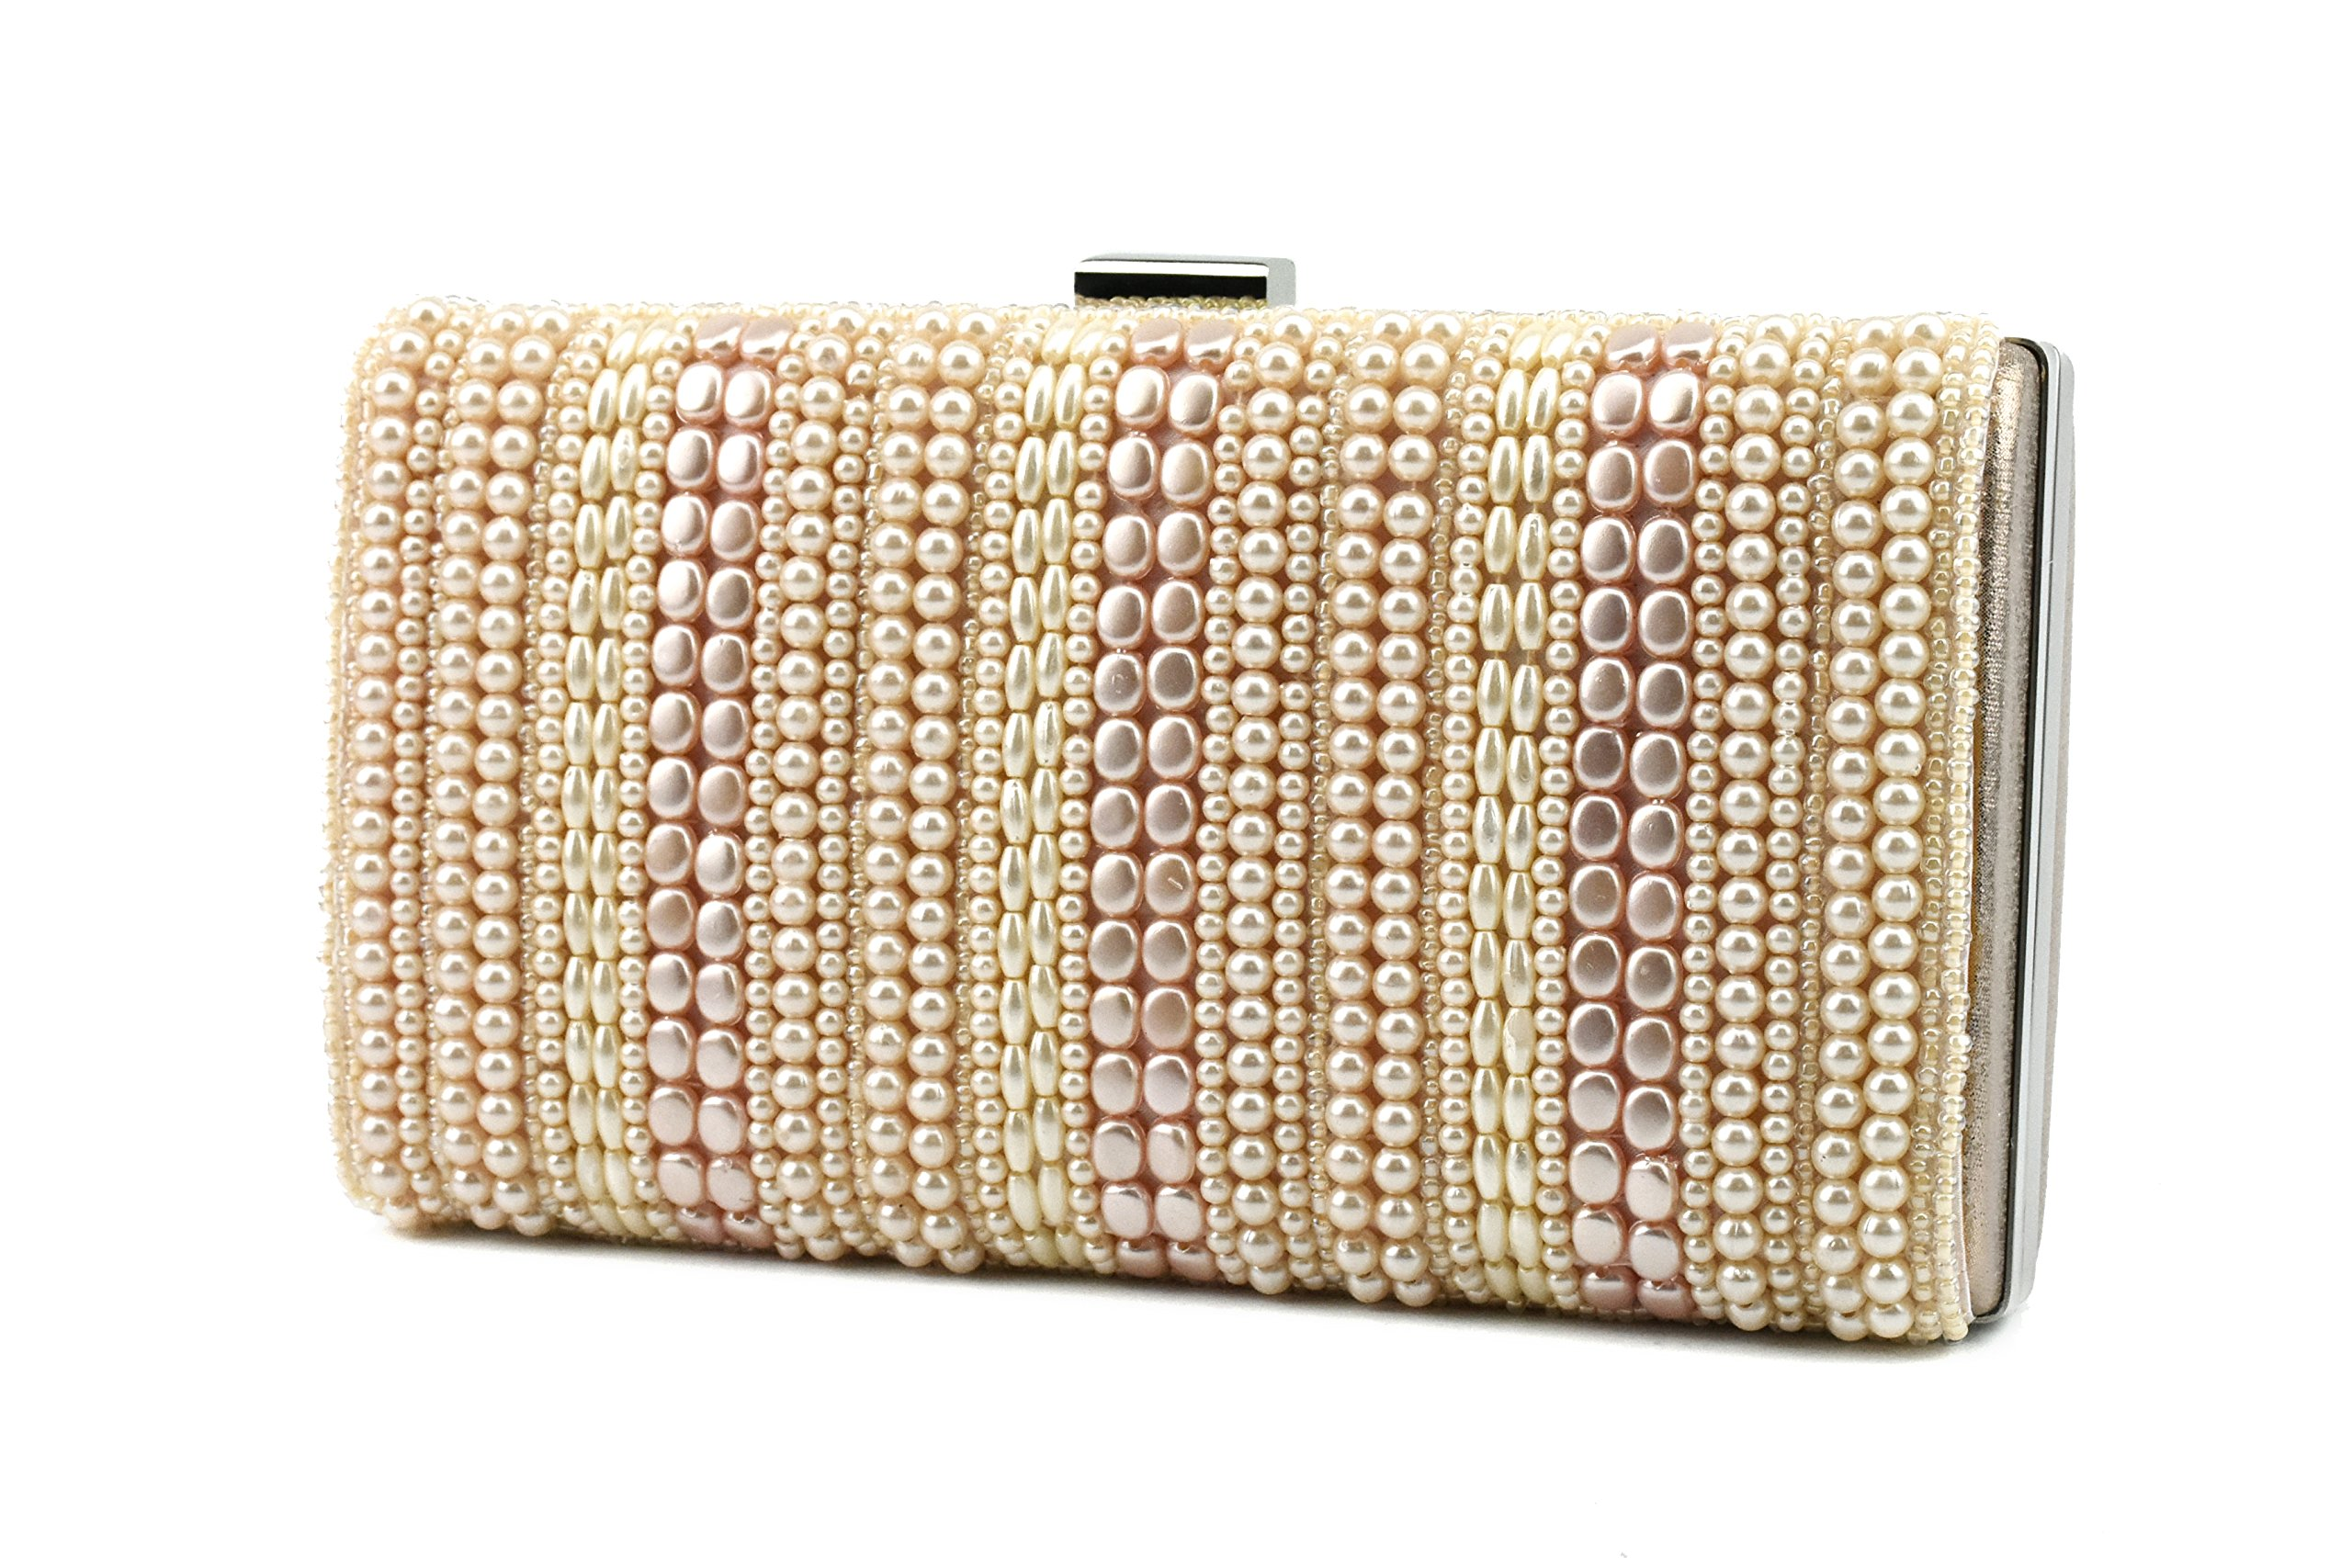 Ruiatoo Multicolor Purse Evening Clutch for Women Handbag Party Beaded Satchel Tote Champagne